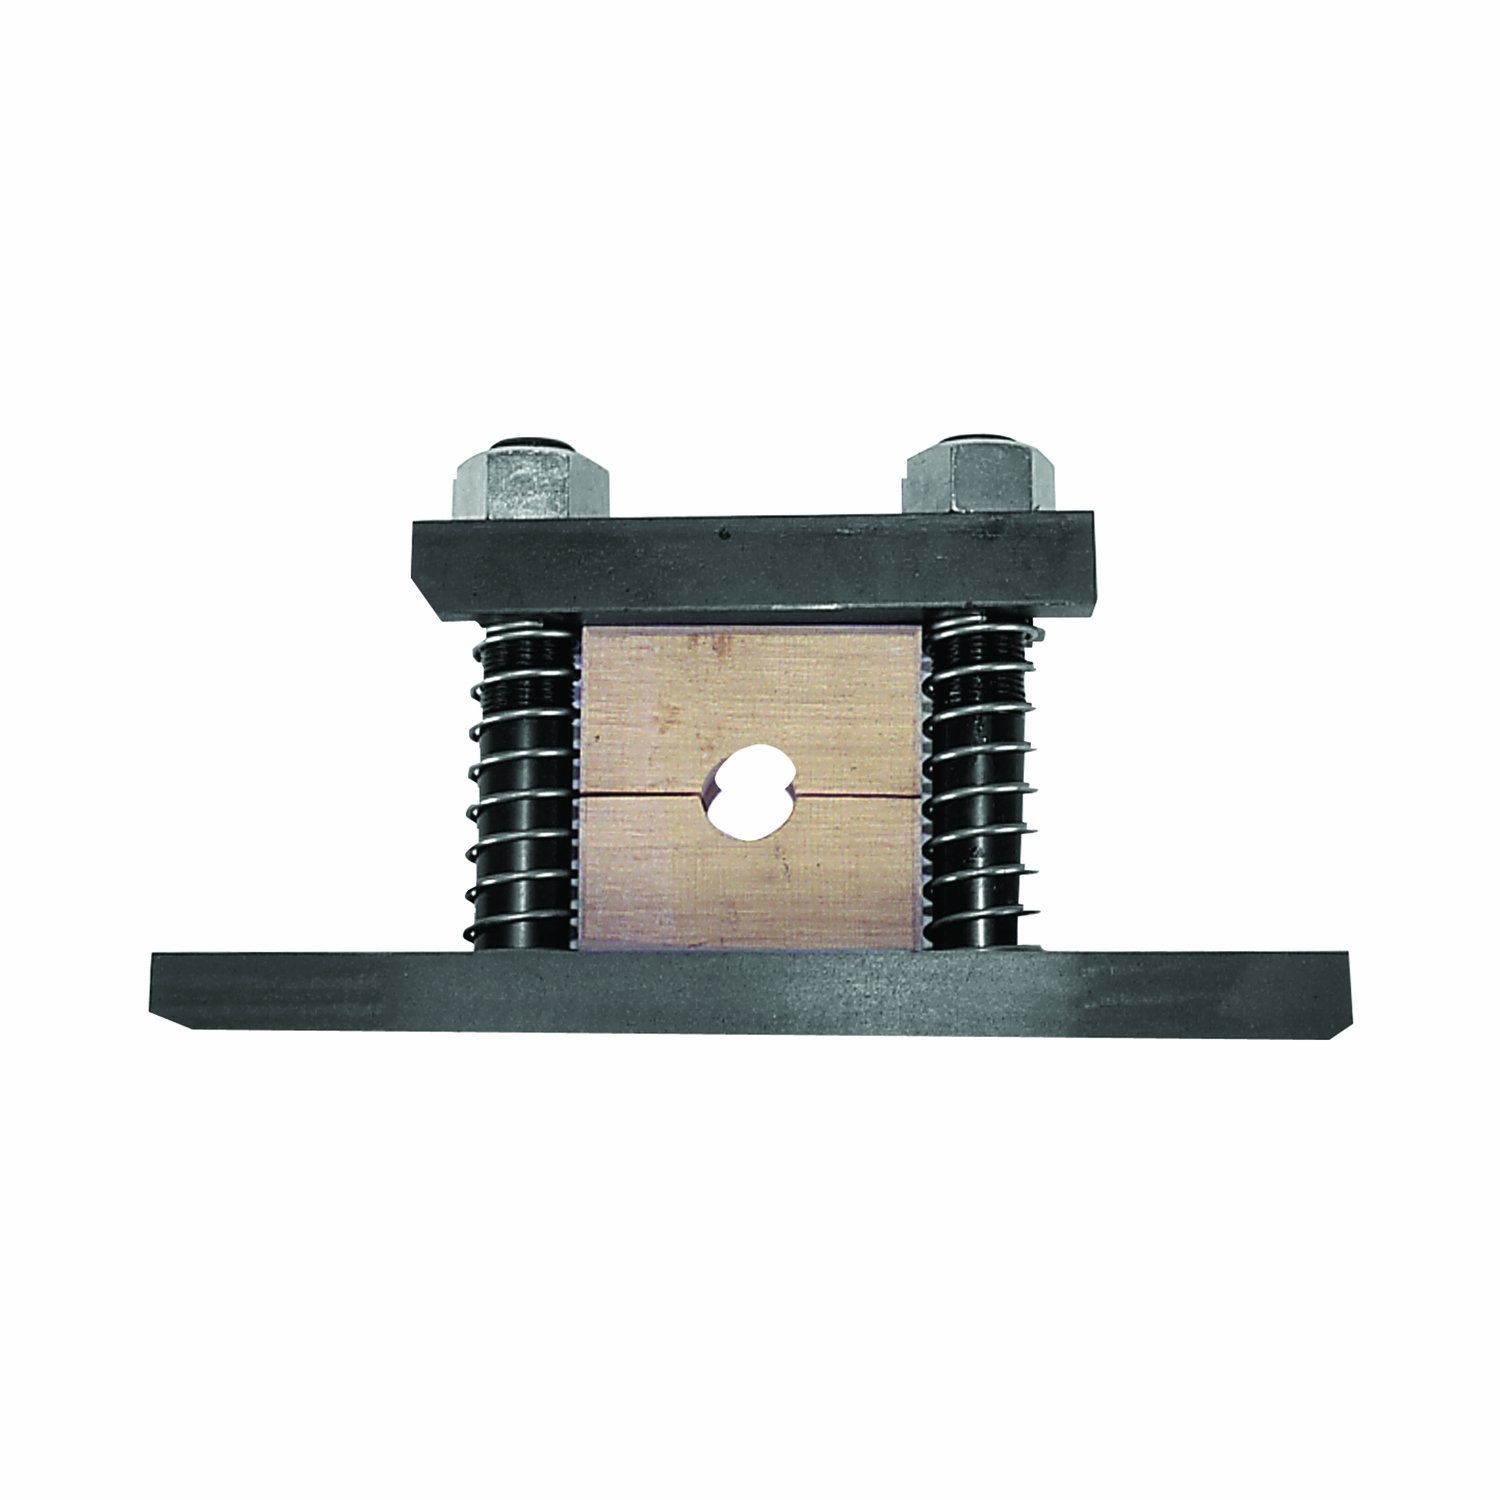 Wheeler 465185 Barrel Vise with 3 Oak Bushings